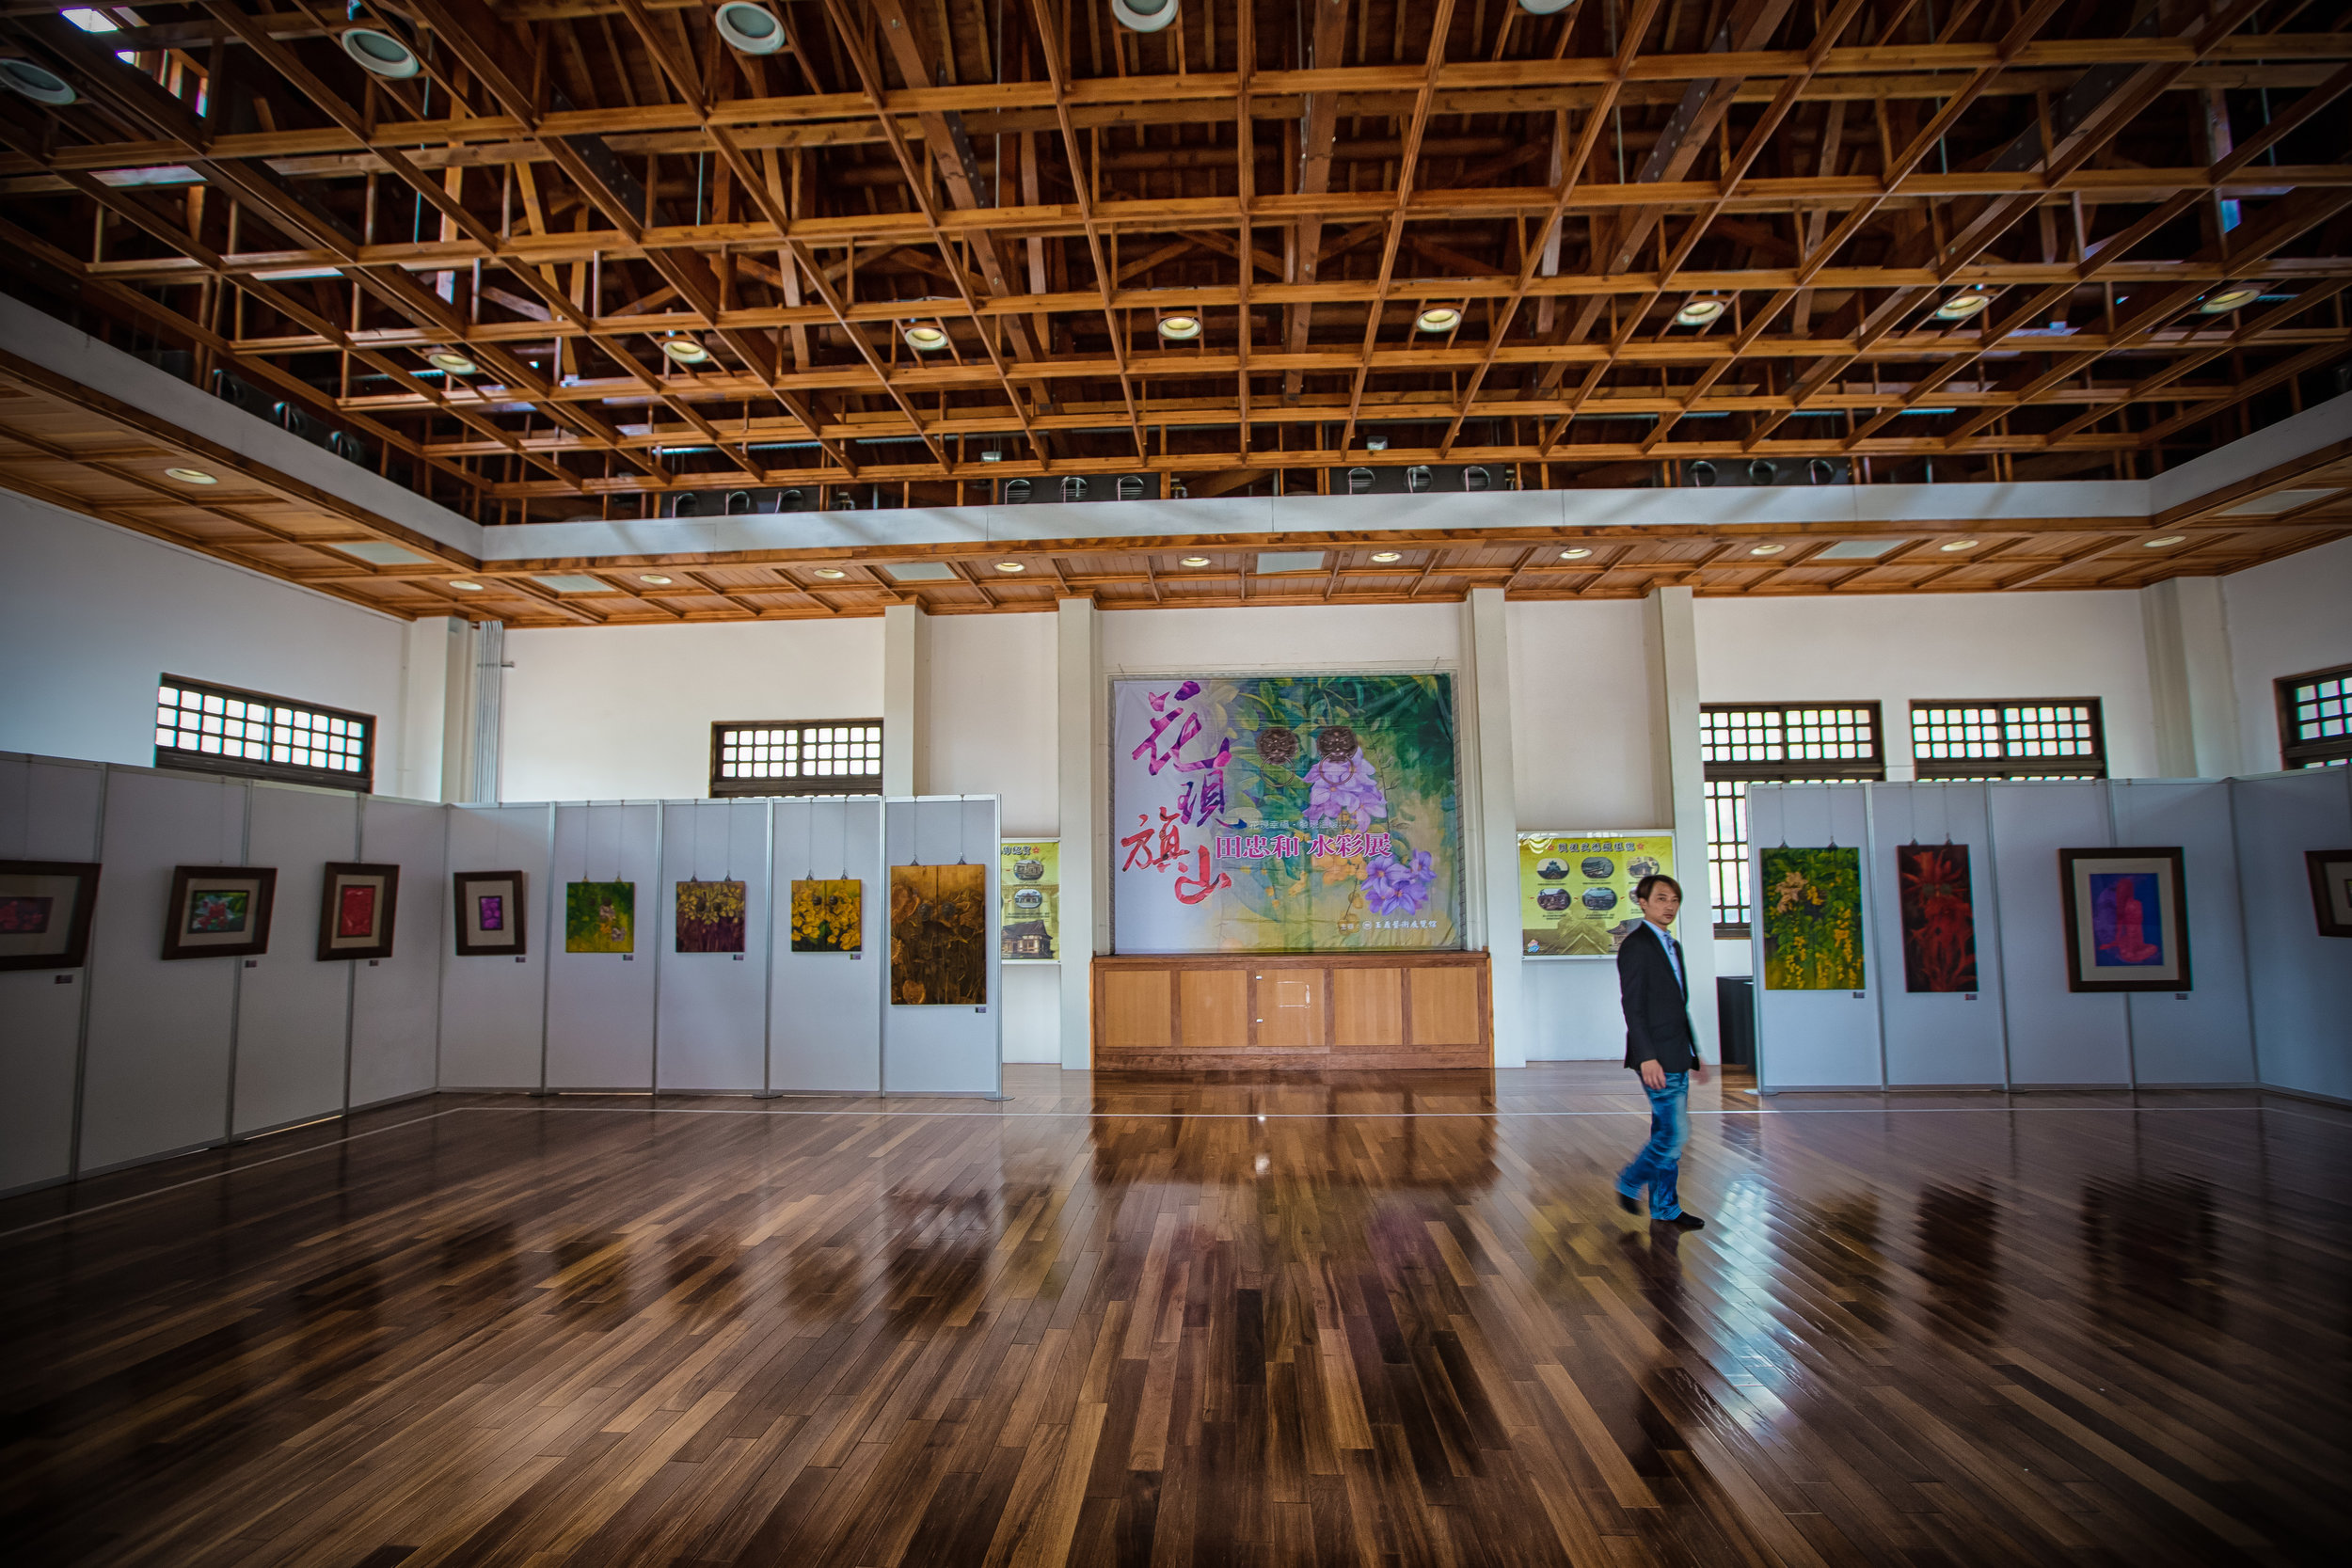 The Interior of the Martial Arts Hall with a local Art exhibition taking place.